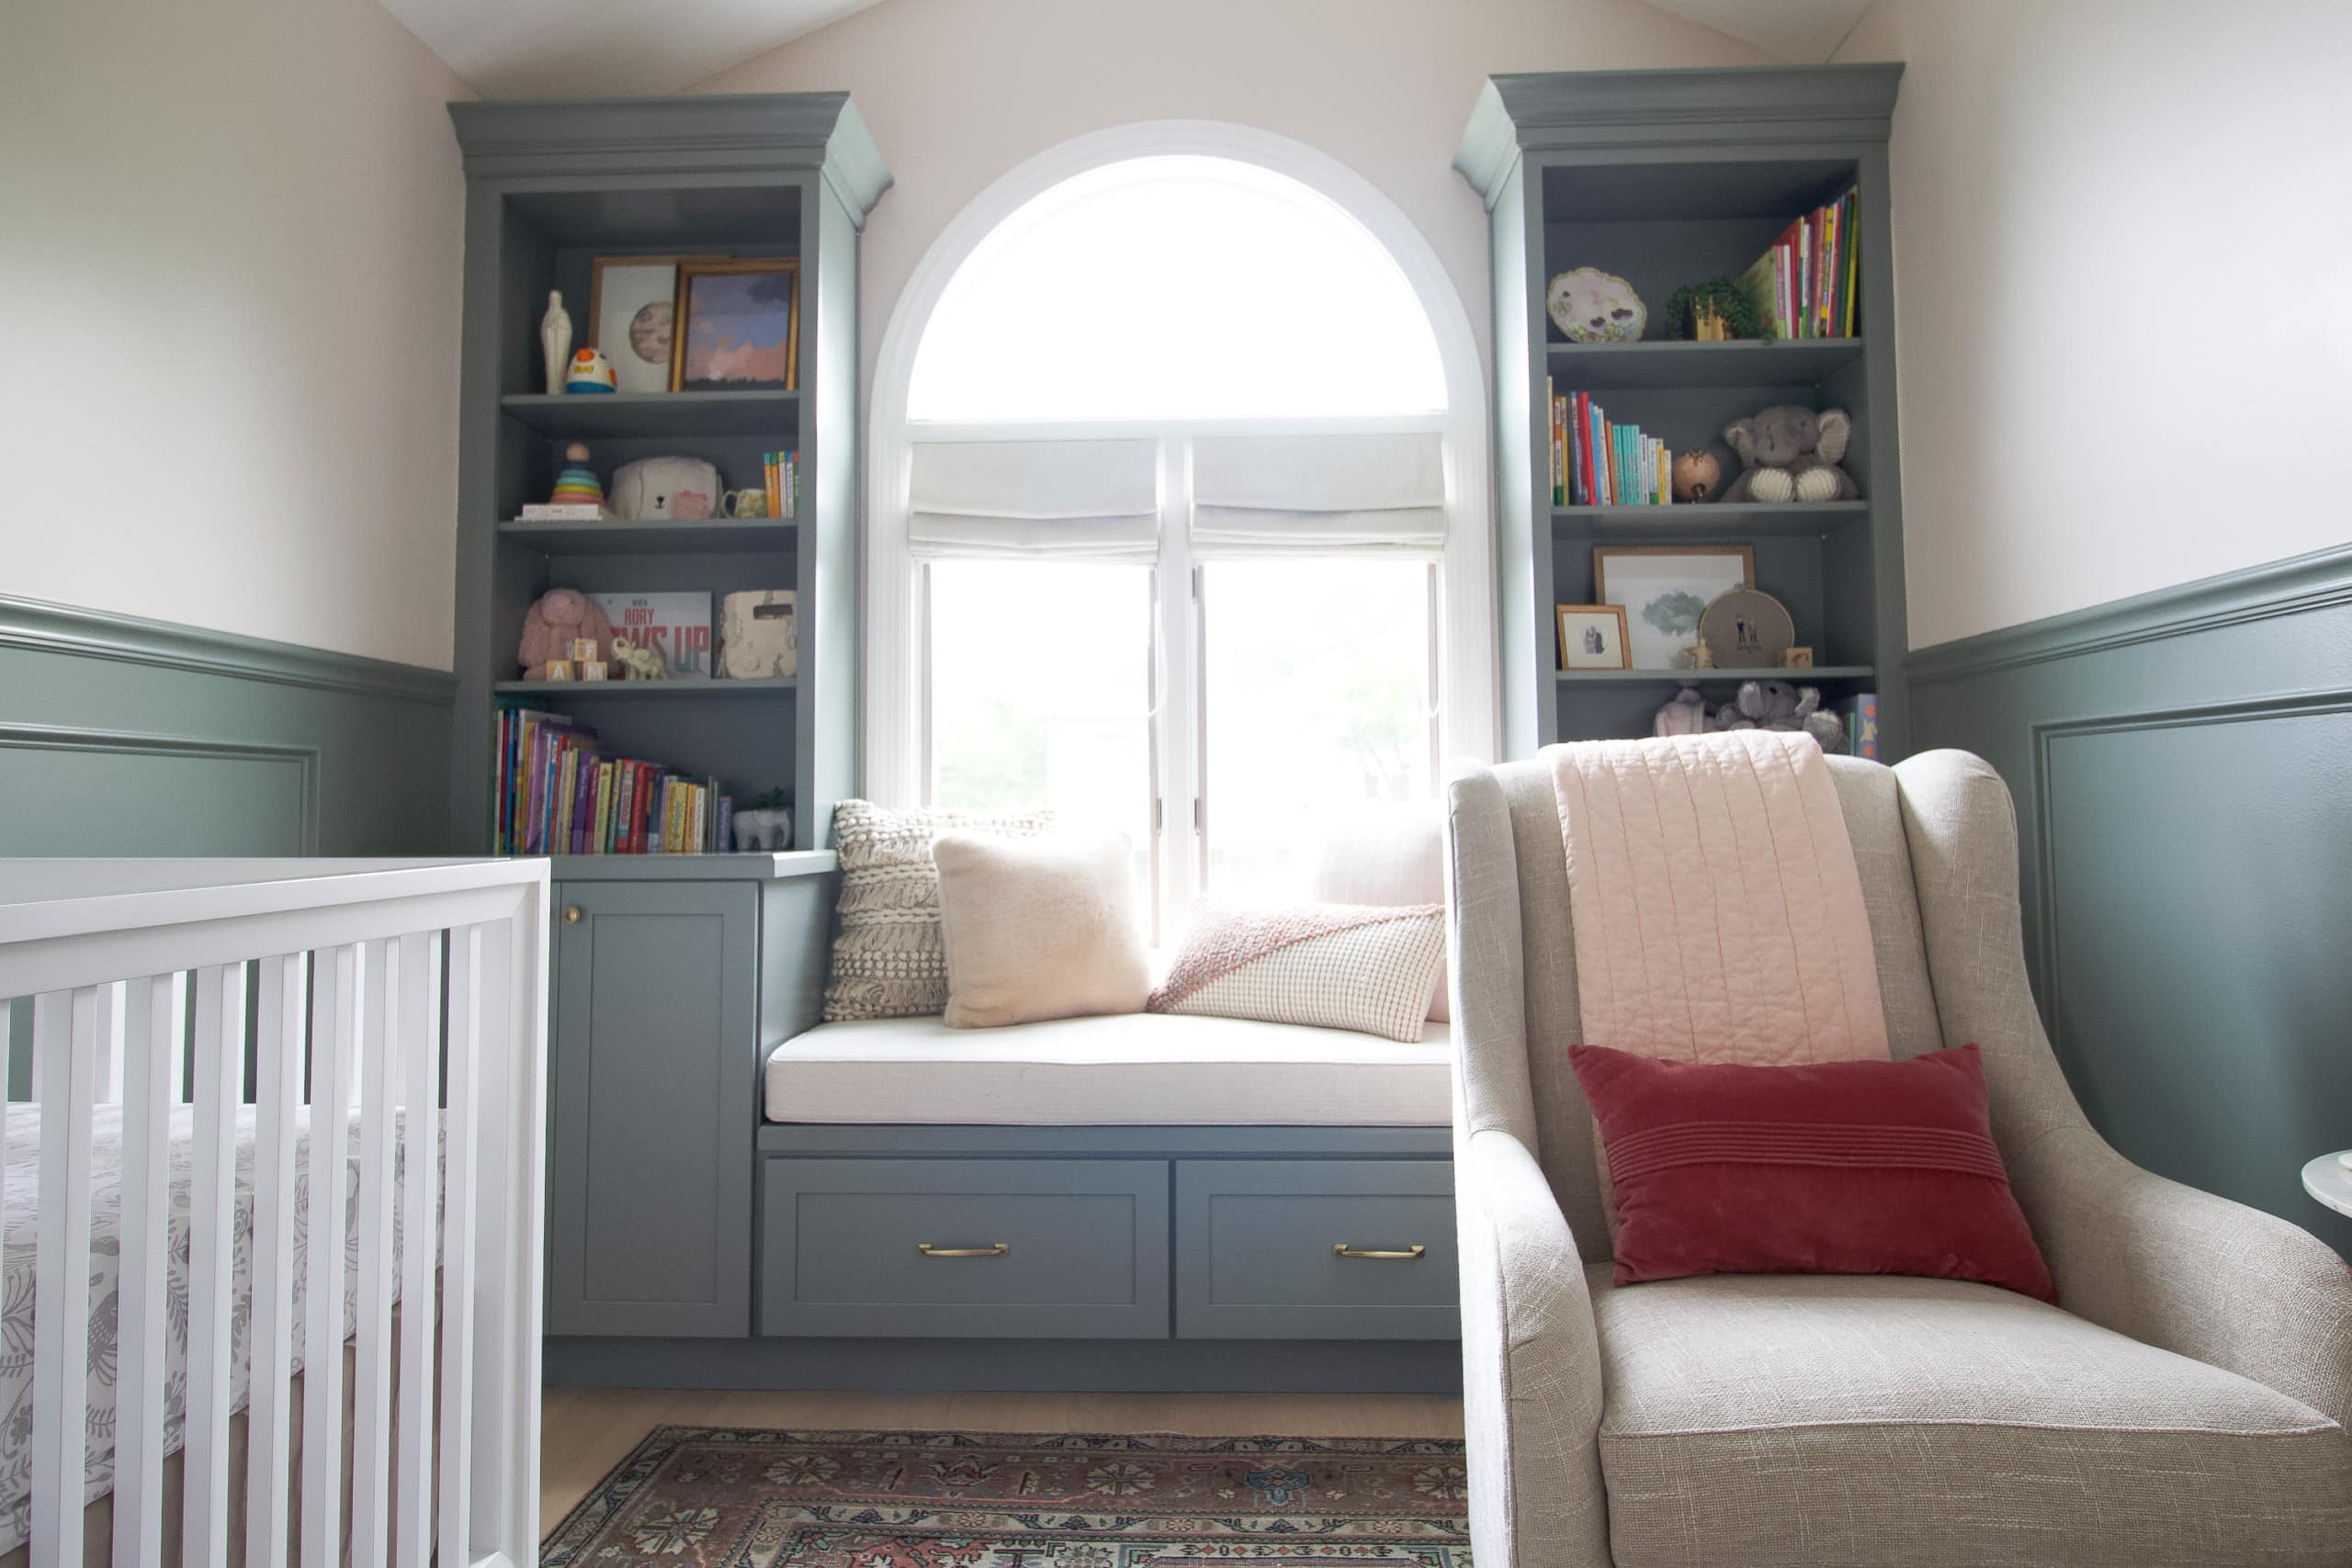 the built-ins in rorys nursery